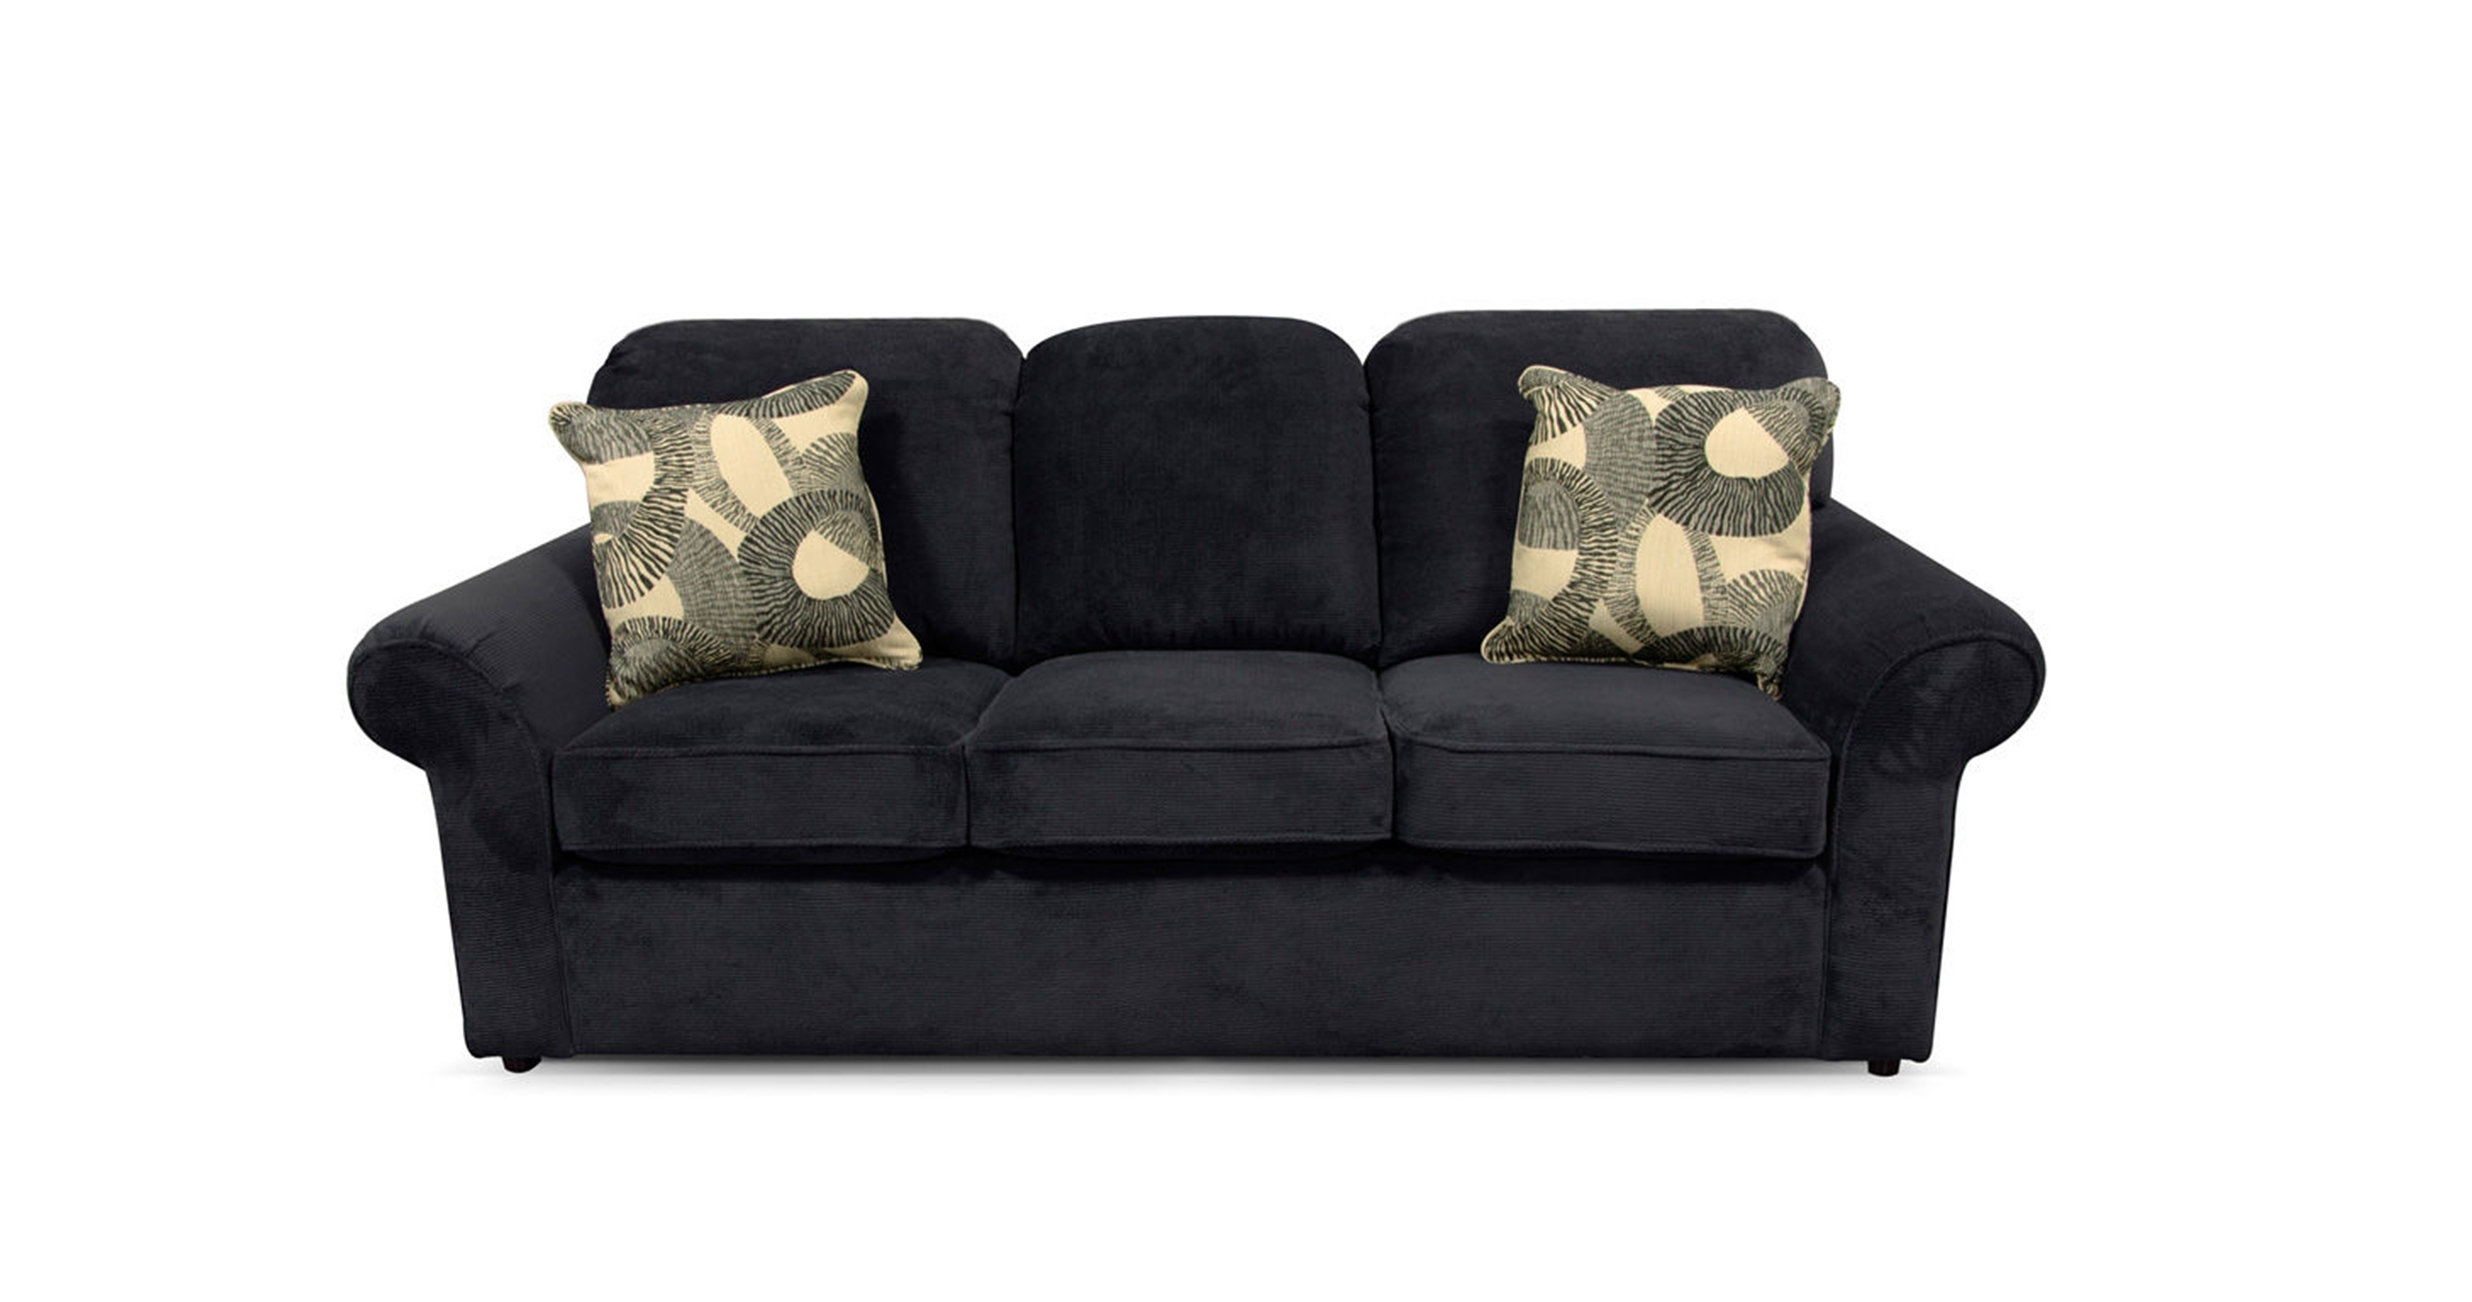 Most Popular Black Microfiber Lazy Boy Full Sleeper Sofa With 3 Cushions And Pertaining To Lazy Boy Chaises (View 7 of 15)